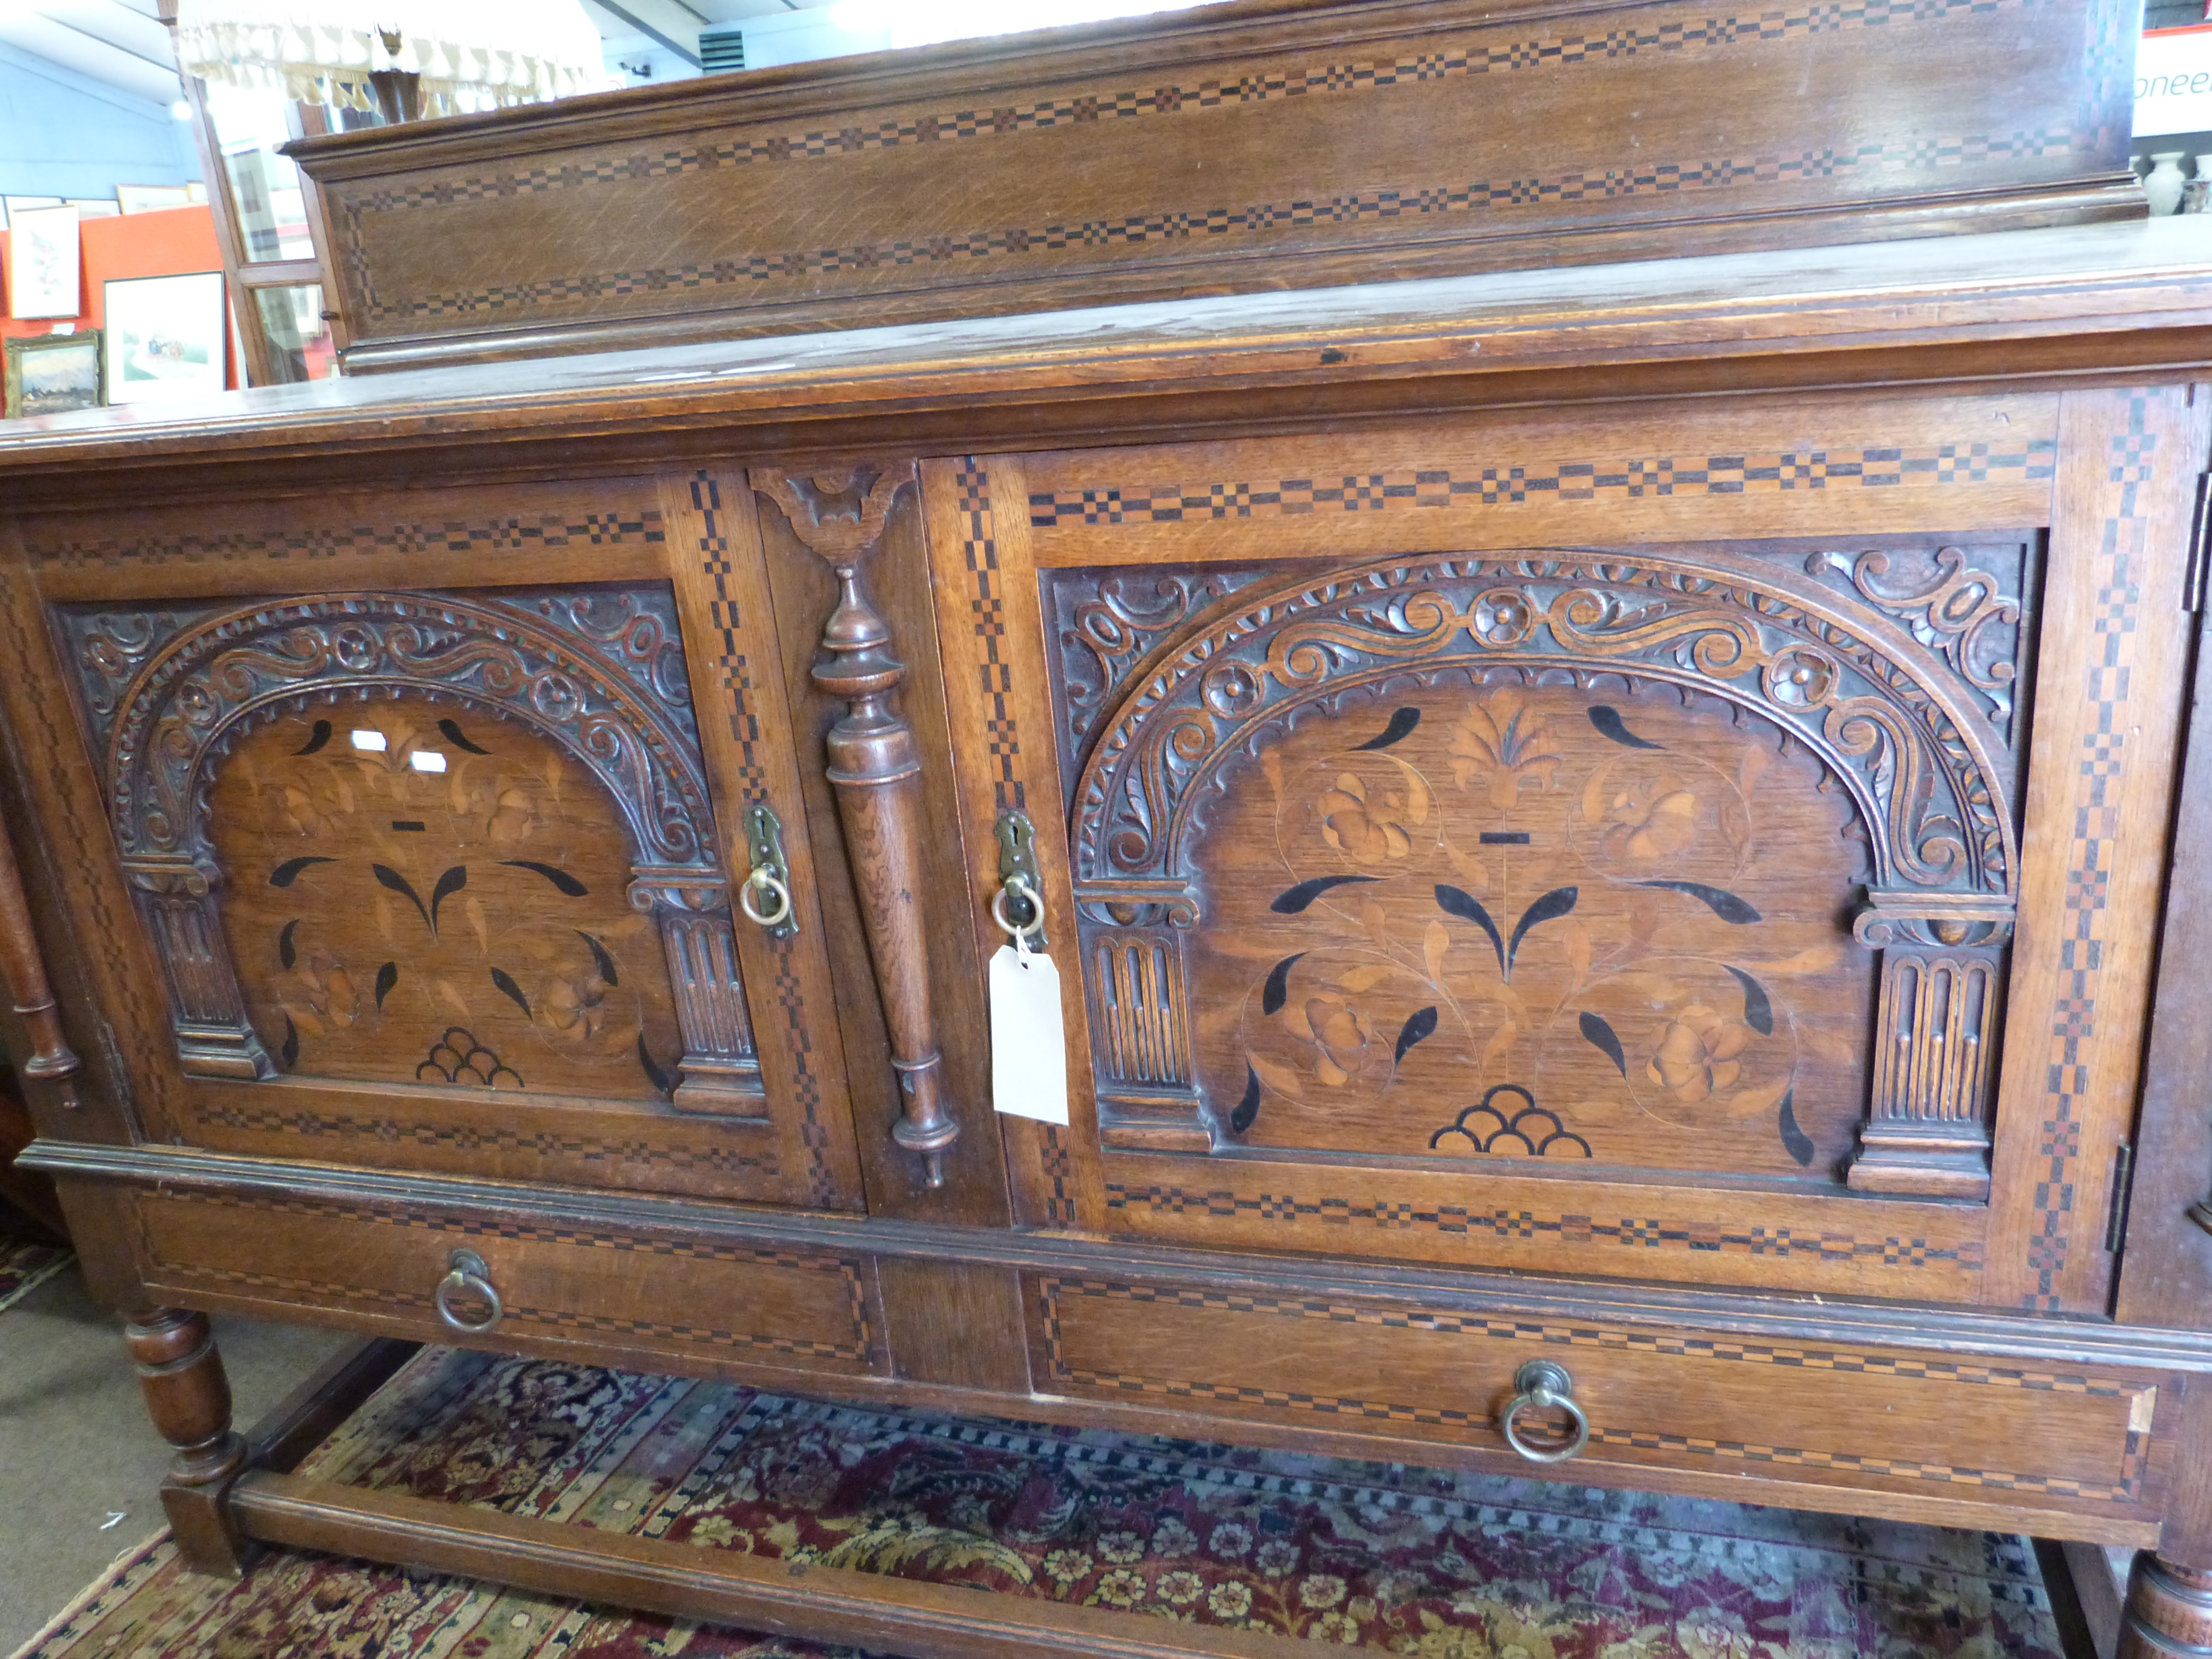 Good quality early 20th century oak sideboard in 17th century style having a chequered inlaid - Image 4 of 4